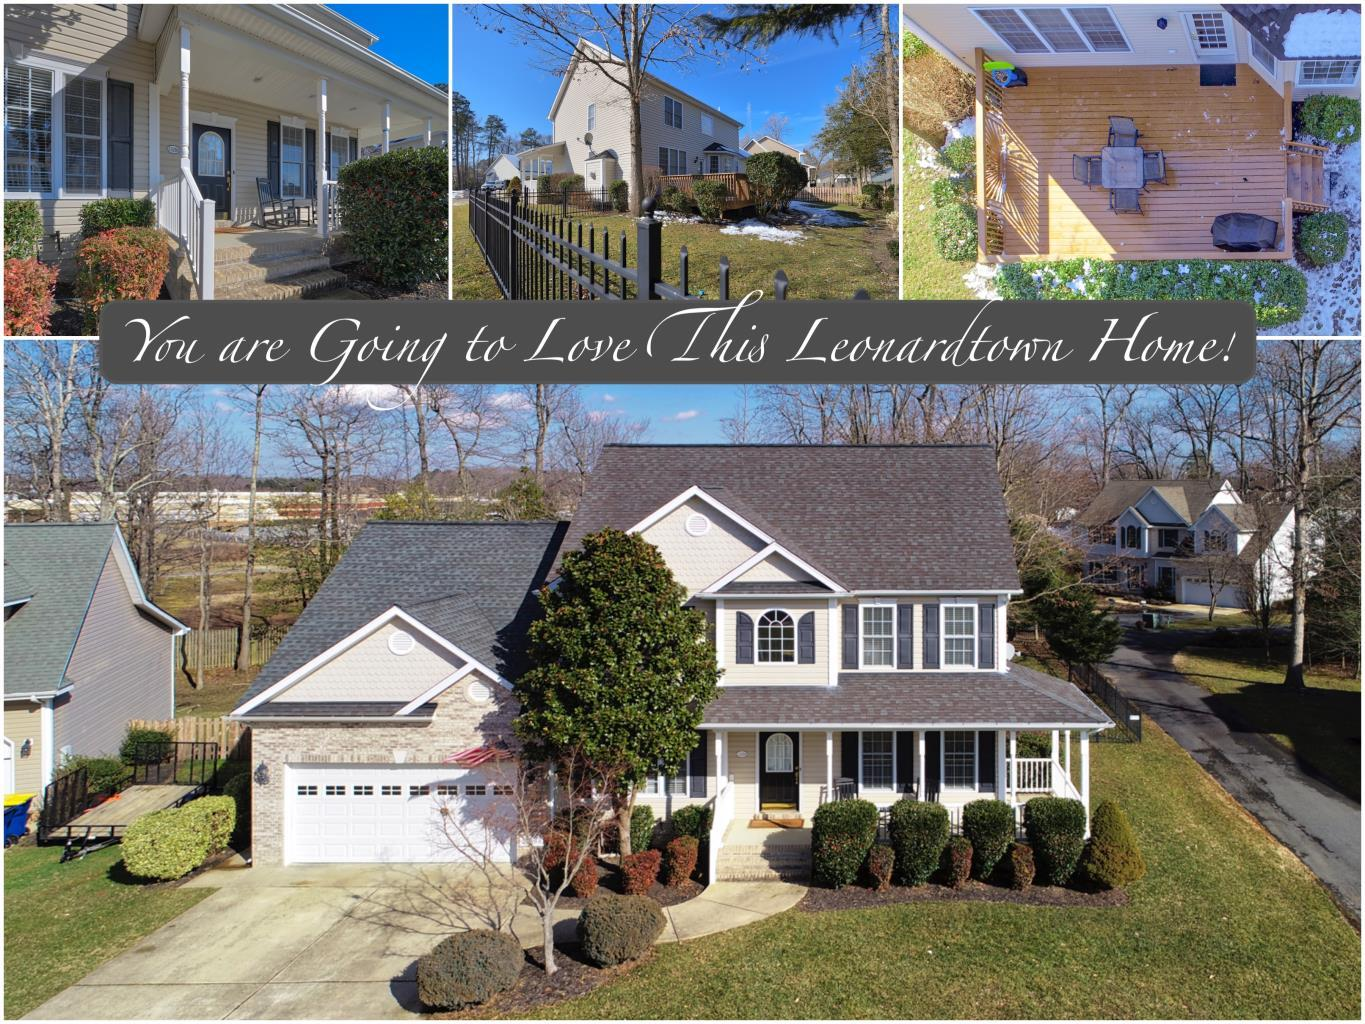 23288 Jenifer Ct Leonardtown MD is a beautiful home listed by Marie Lally, Realtor with O'Brien Realty in Southern Maryland